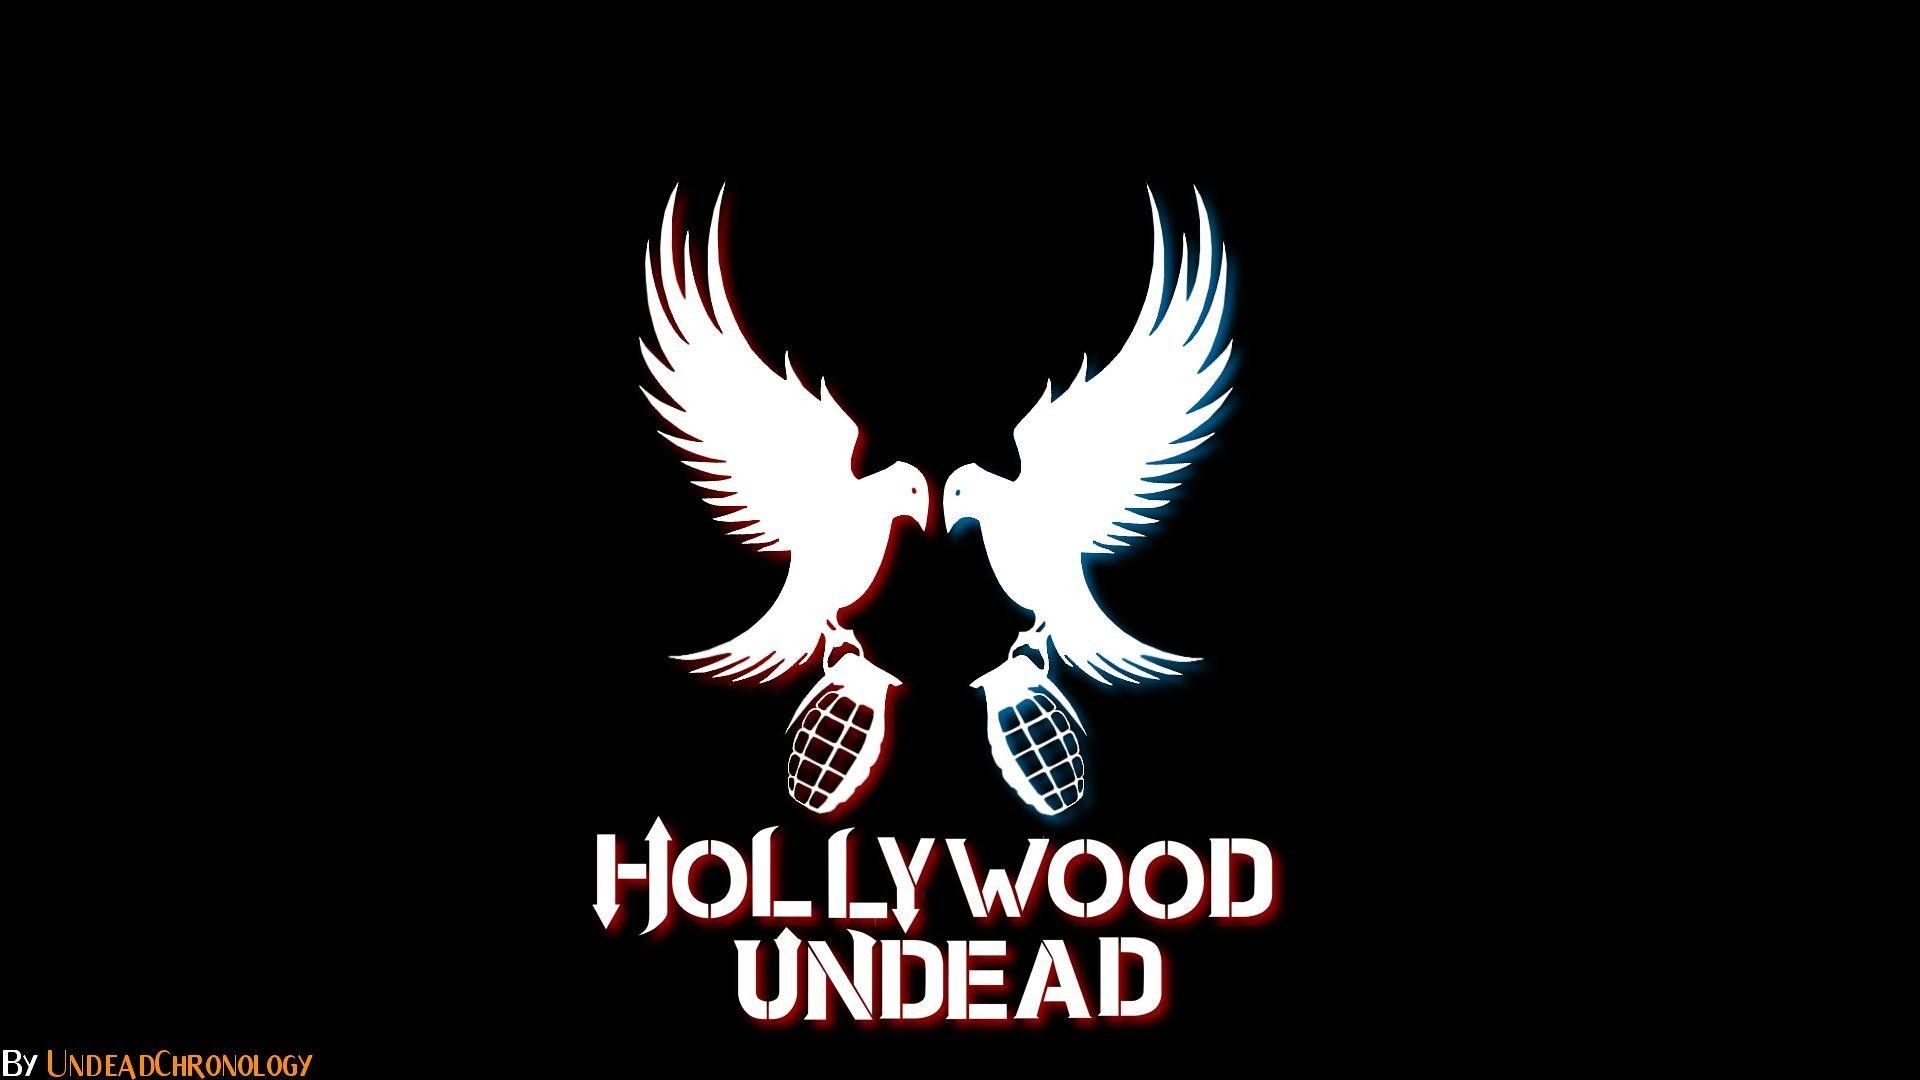 1920x1080 Hollywood Undead Wallpapers - WallpaperSafari